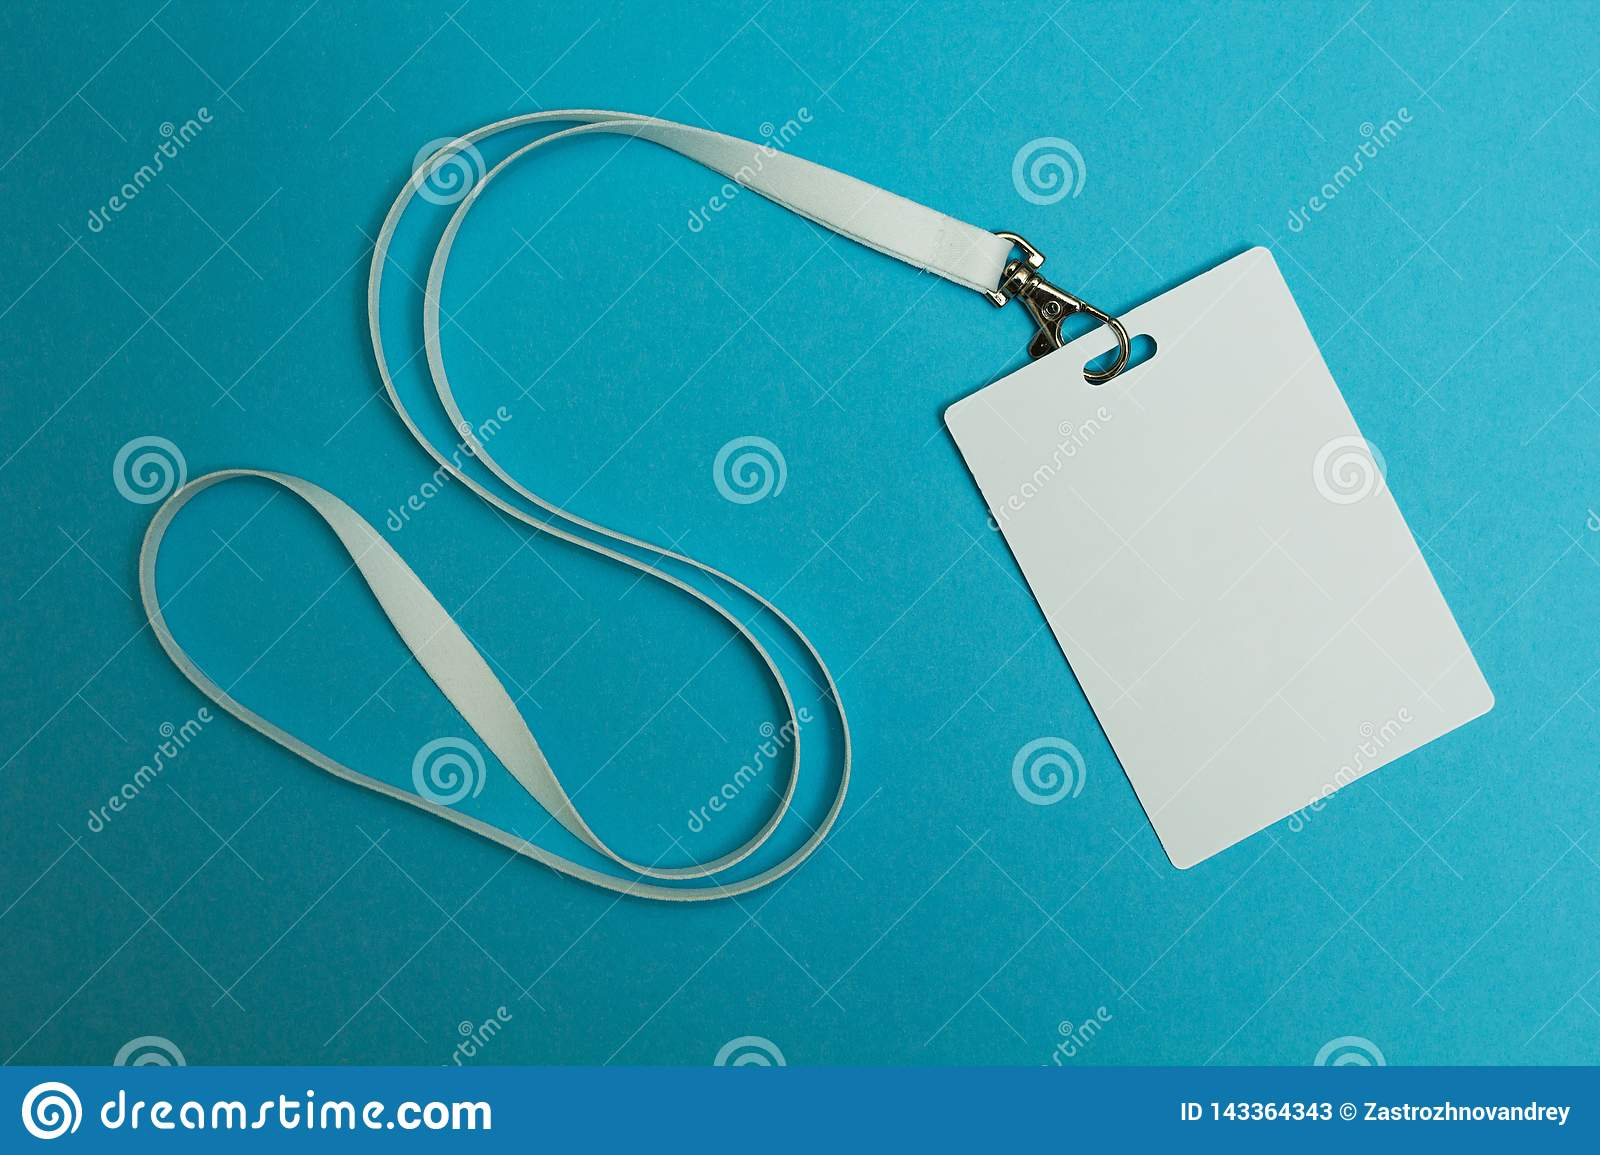 Name Tag with blue background